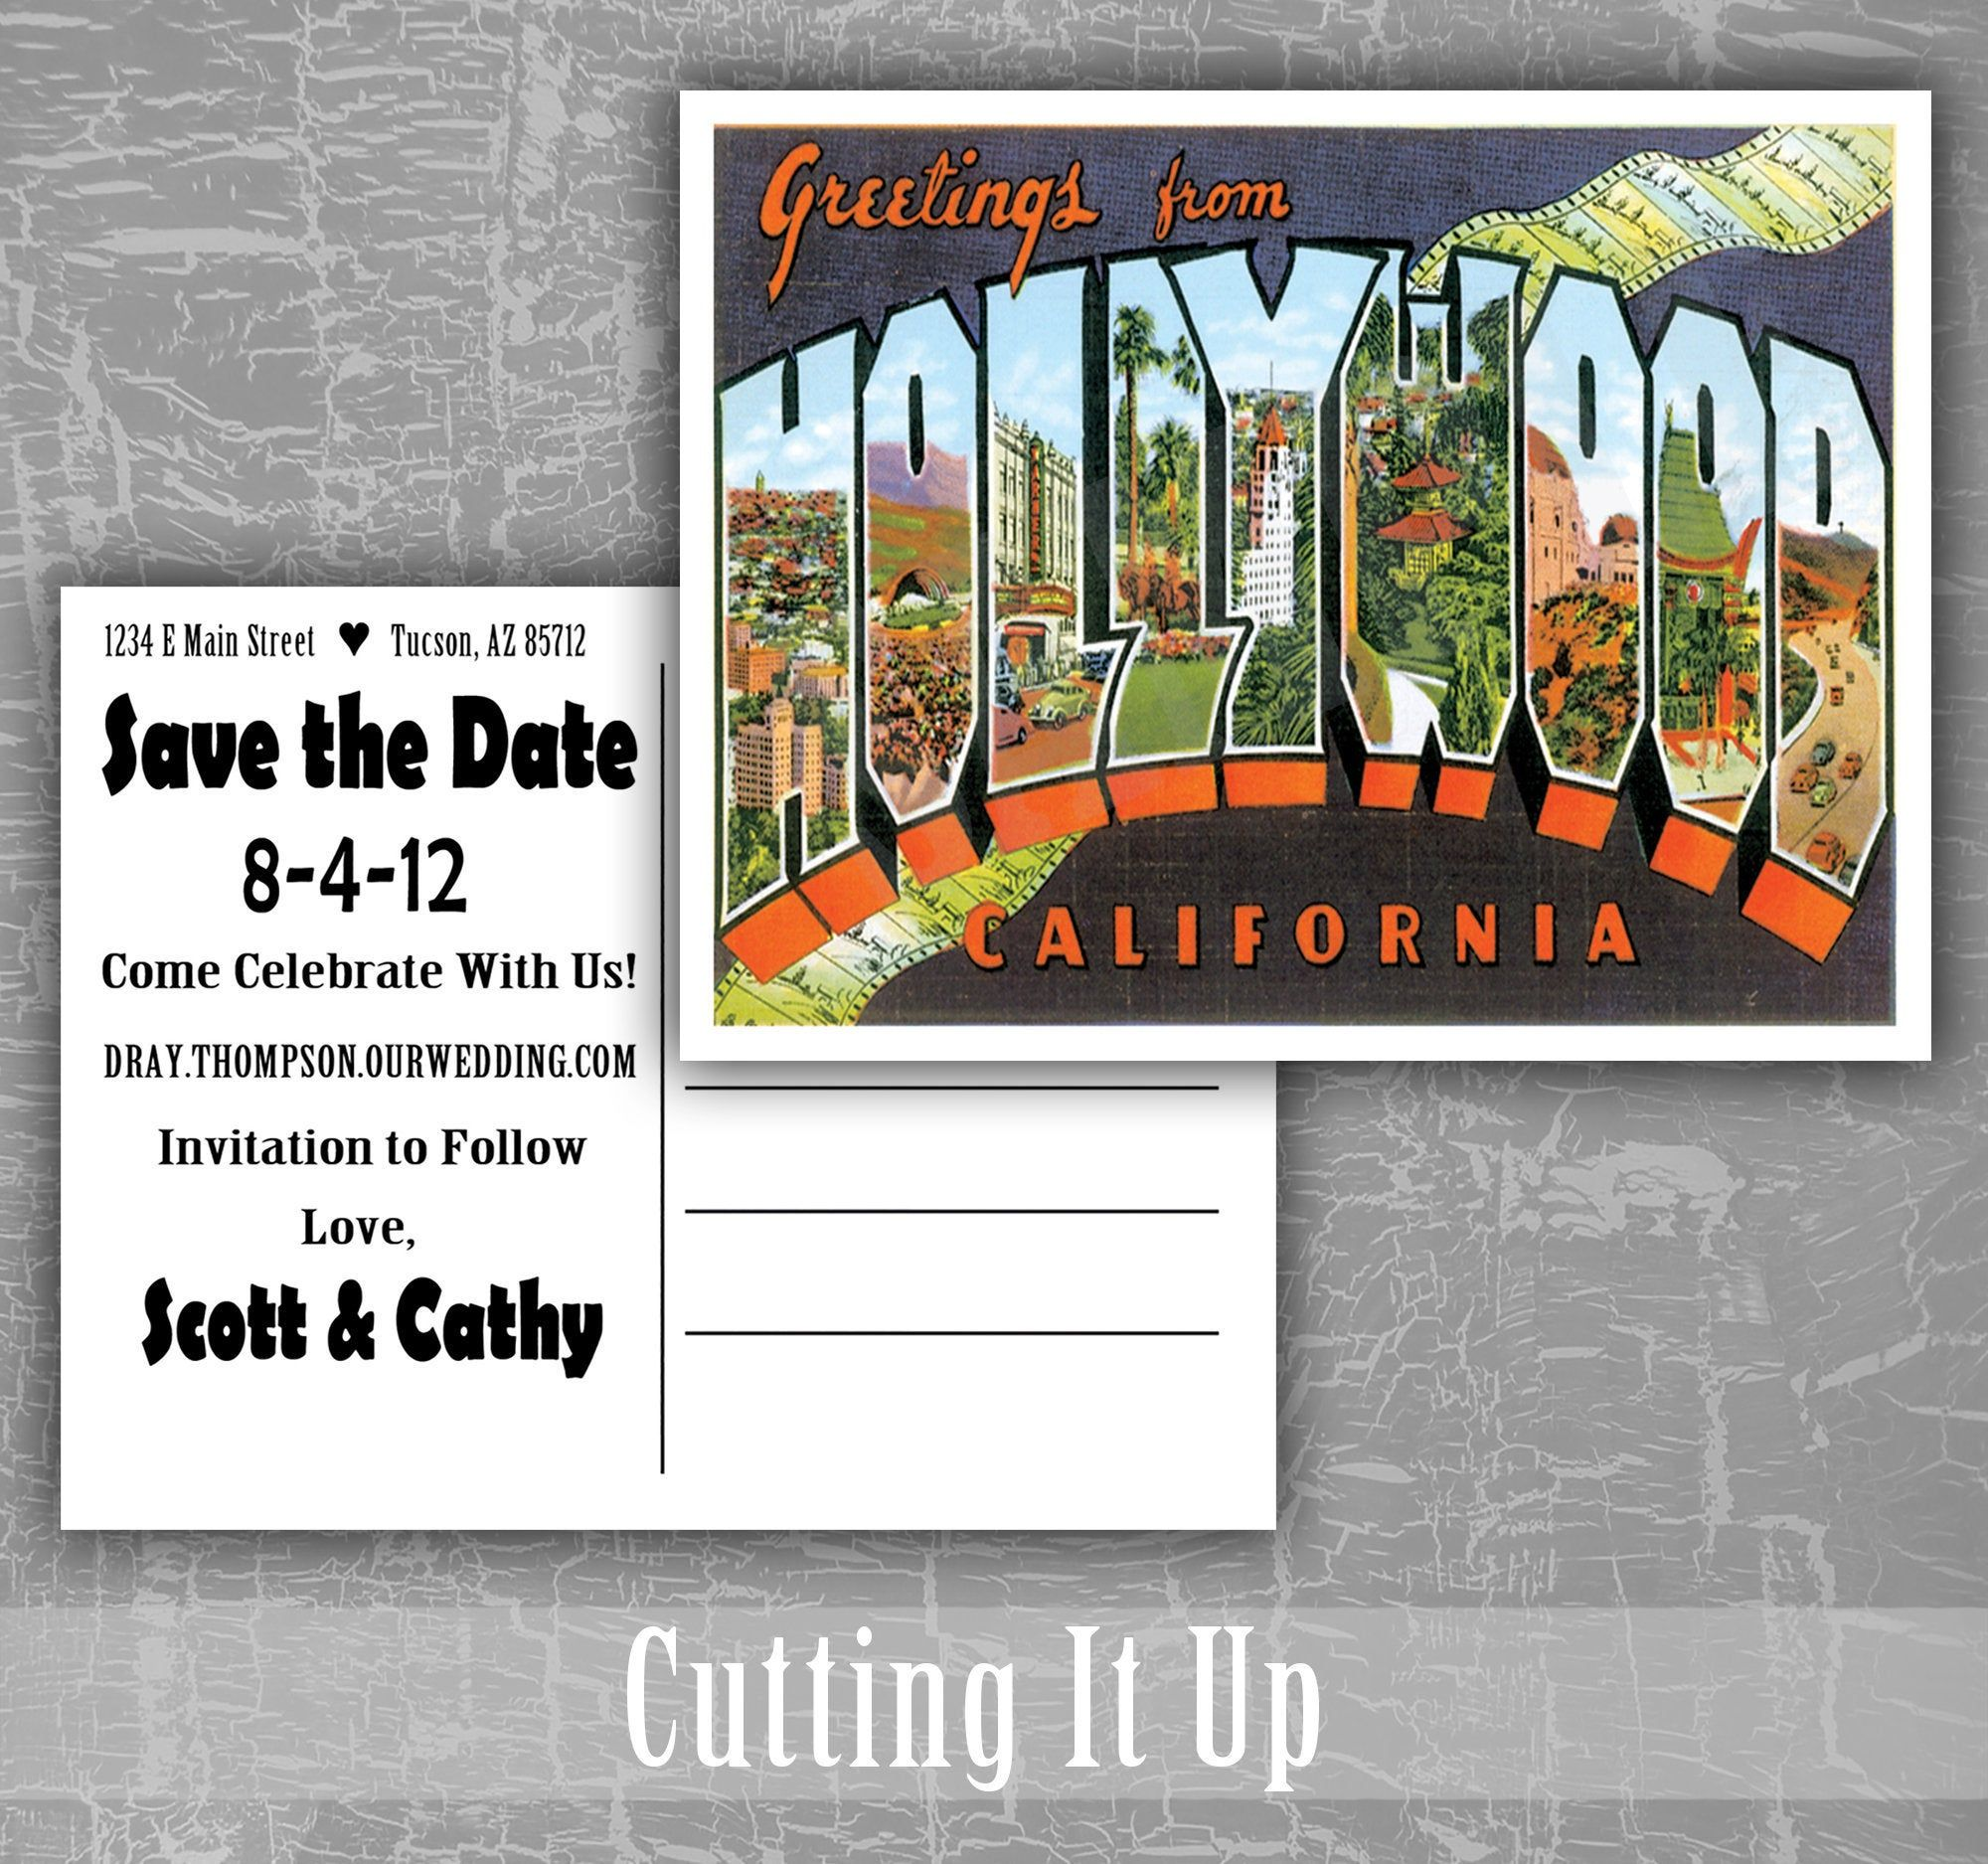 Greetings From Hollywood California Save the Date Postcard